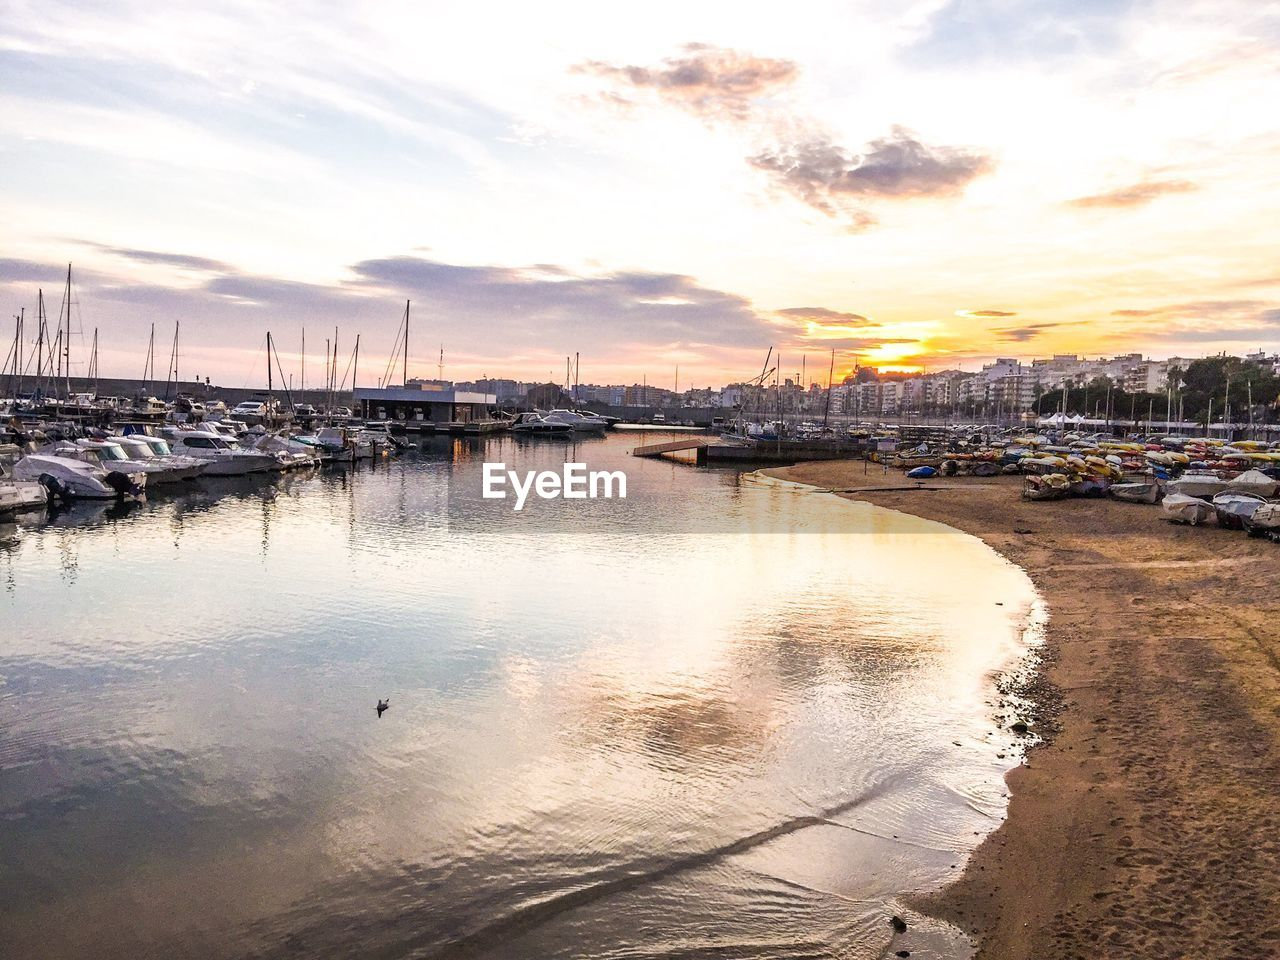 water, sky, nautical vessel, sunset, moored, transportation, mode of transport, cloud - sky, reflection, harbor, sea, no people, nature, outdoors, beauty in nature, scenics, architecture, day